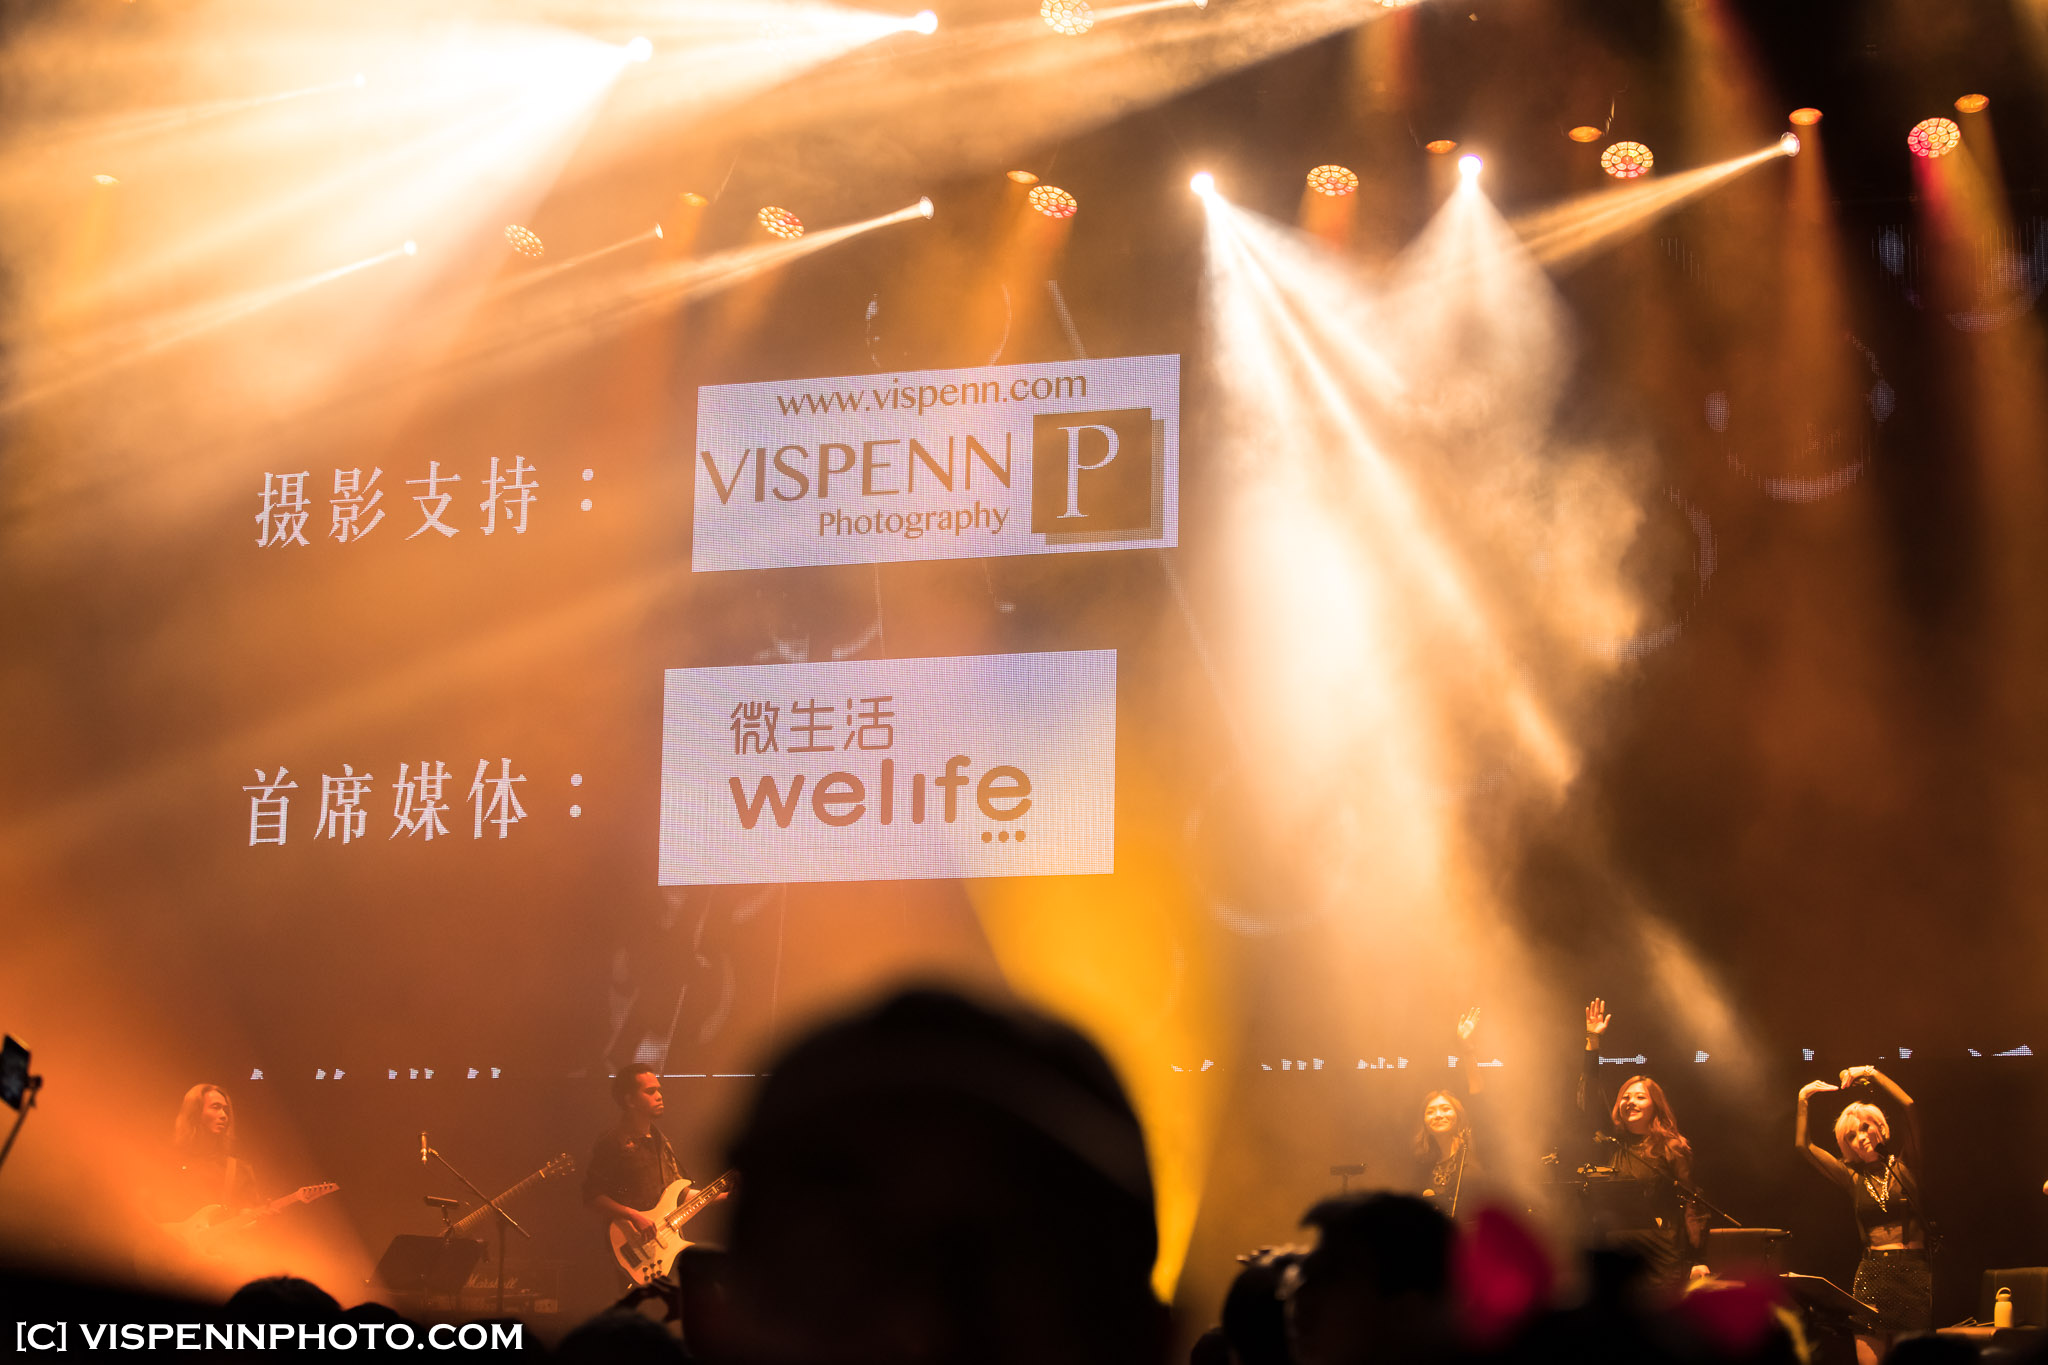 Melbourne CONCERTS Photography 墨尔本 演唱会 照片 摄影师 VISPENN AngelaZhang 1P 4682 1DX VISPENN